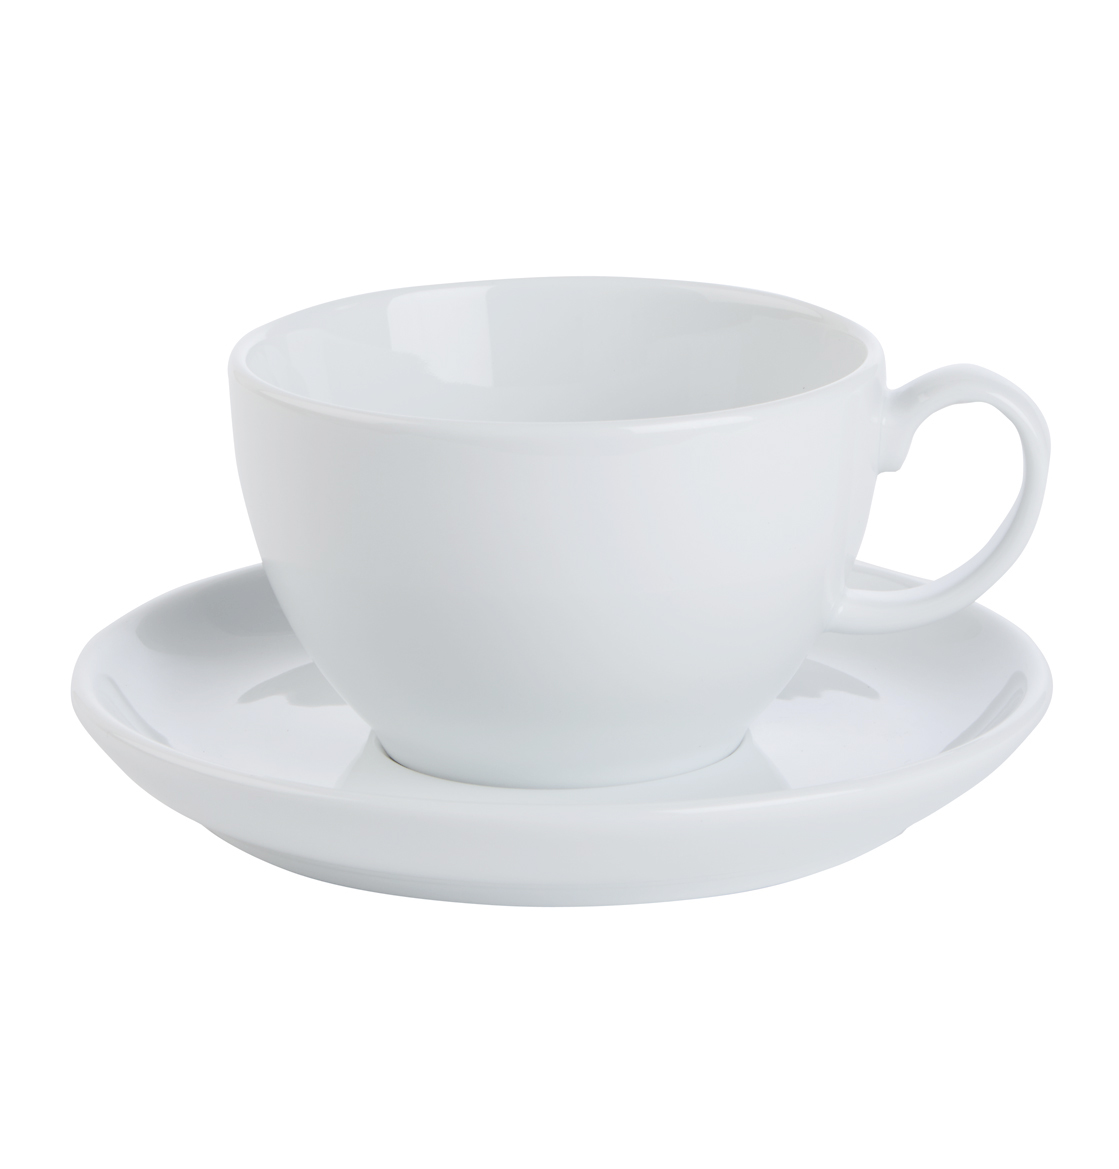 Bowl Shaped Cups & Saucer